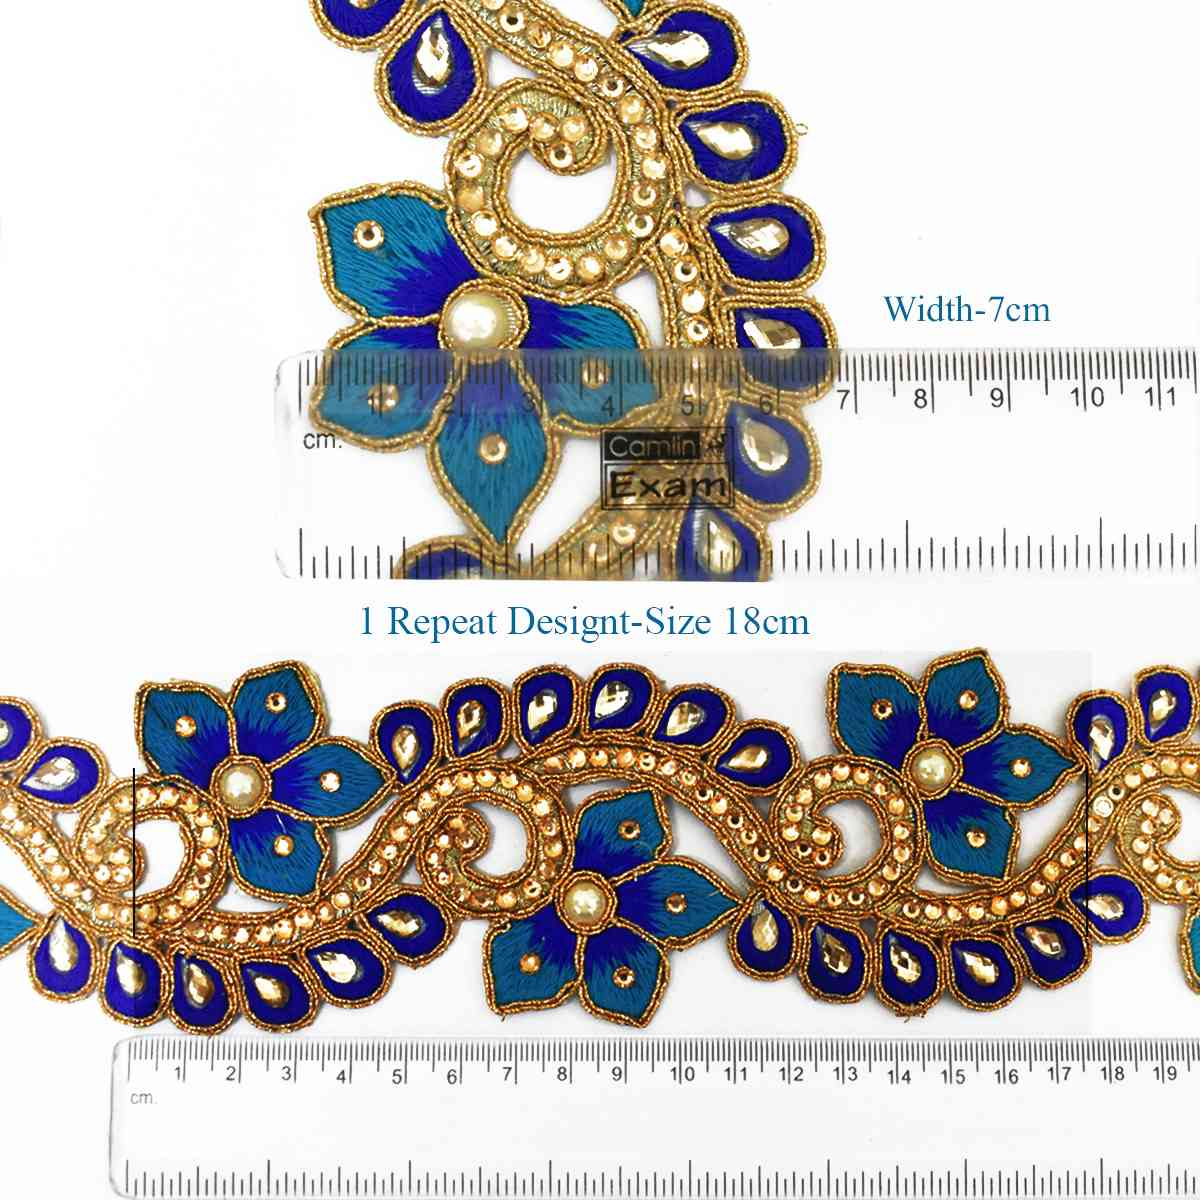 Peacock Hand Embroidery Pattern 1 Meter Peacock Color Floral Design Cutwork Hand Embroidery Lace